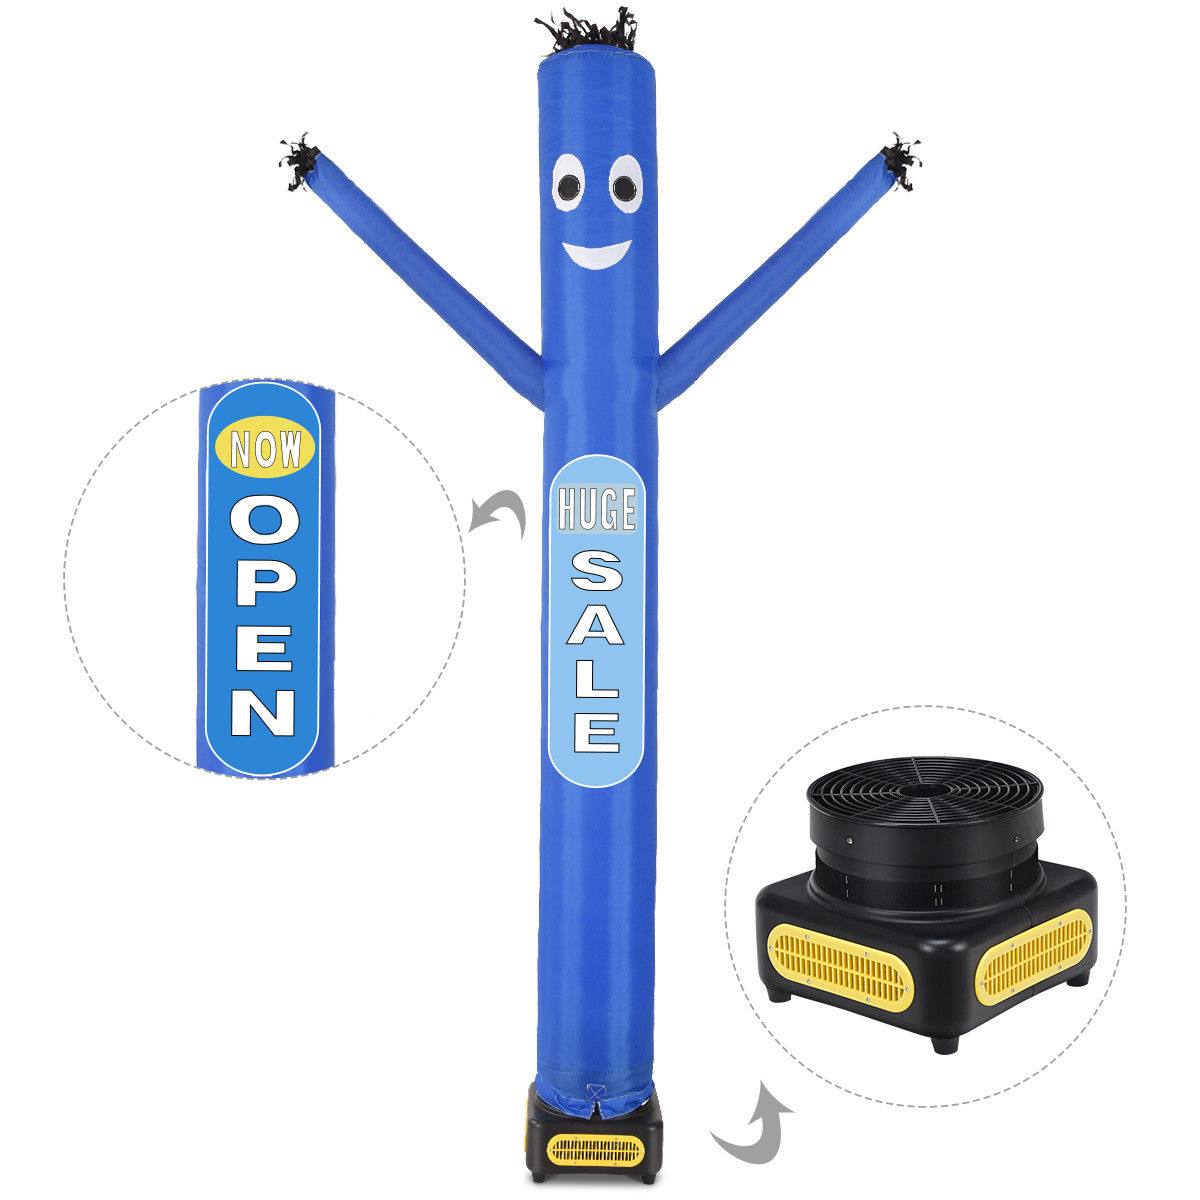 Costway 10ft Inflatable Dancer Puppet Tube Man Removable Slogans With Blower Blue by Costway